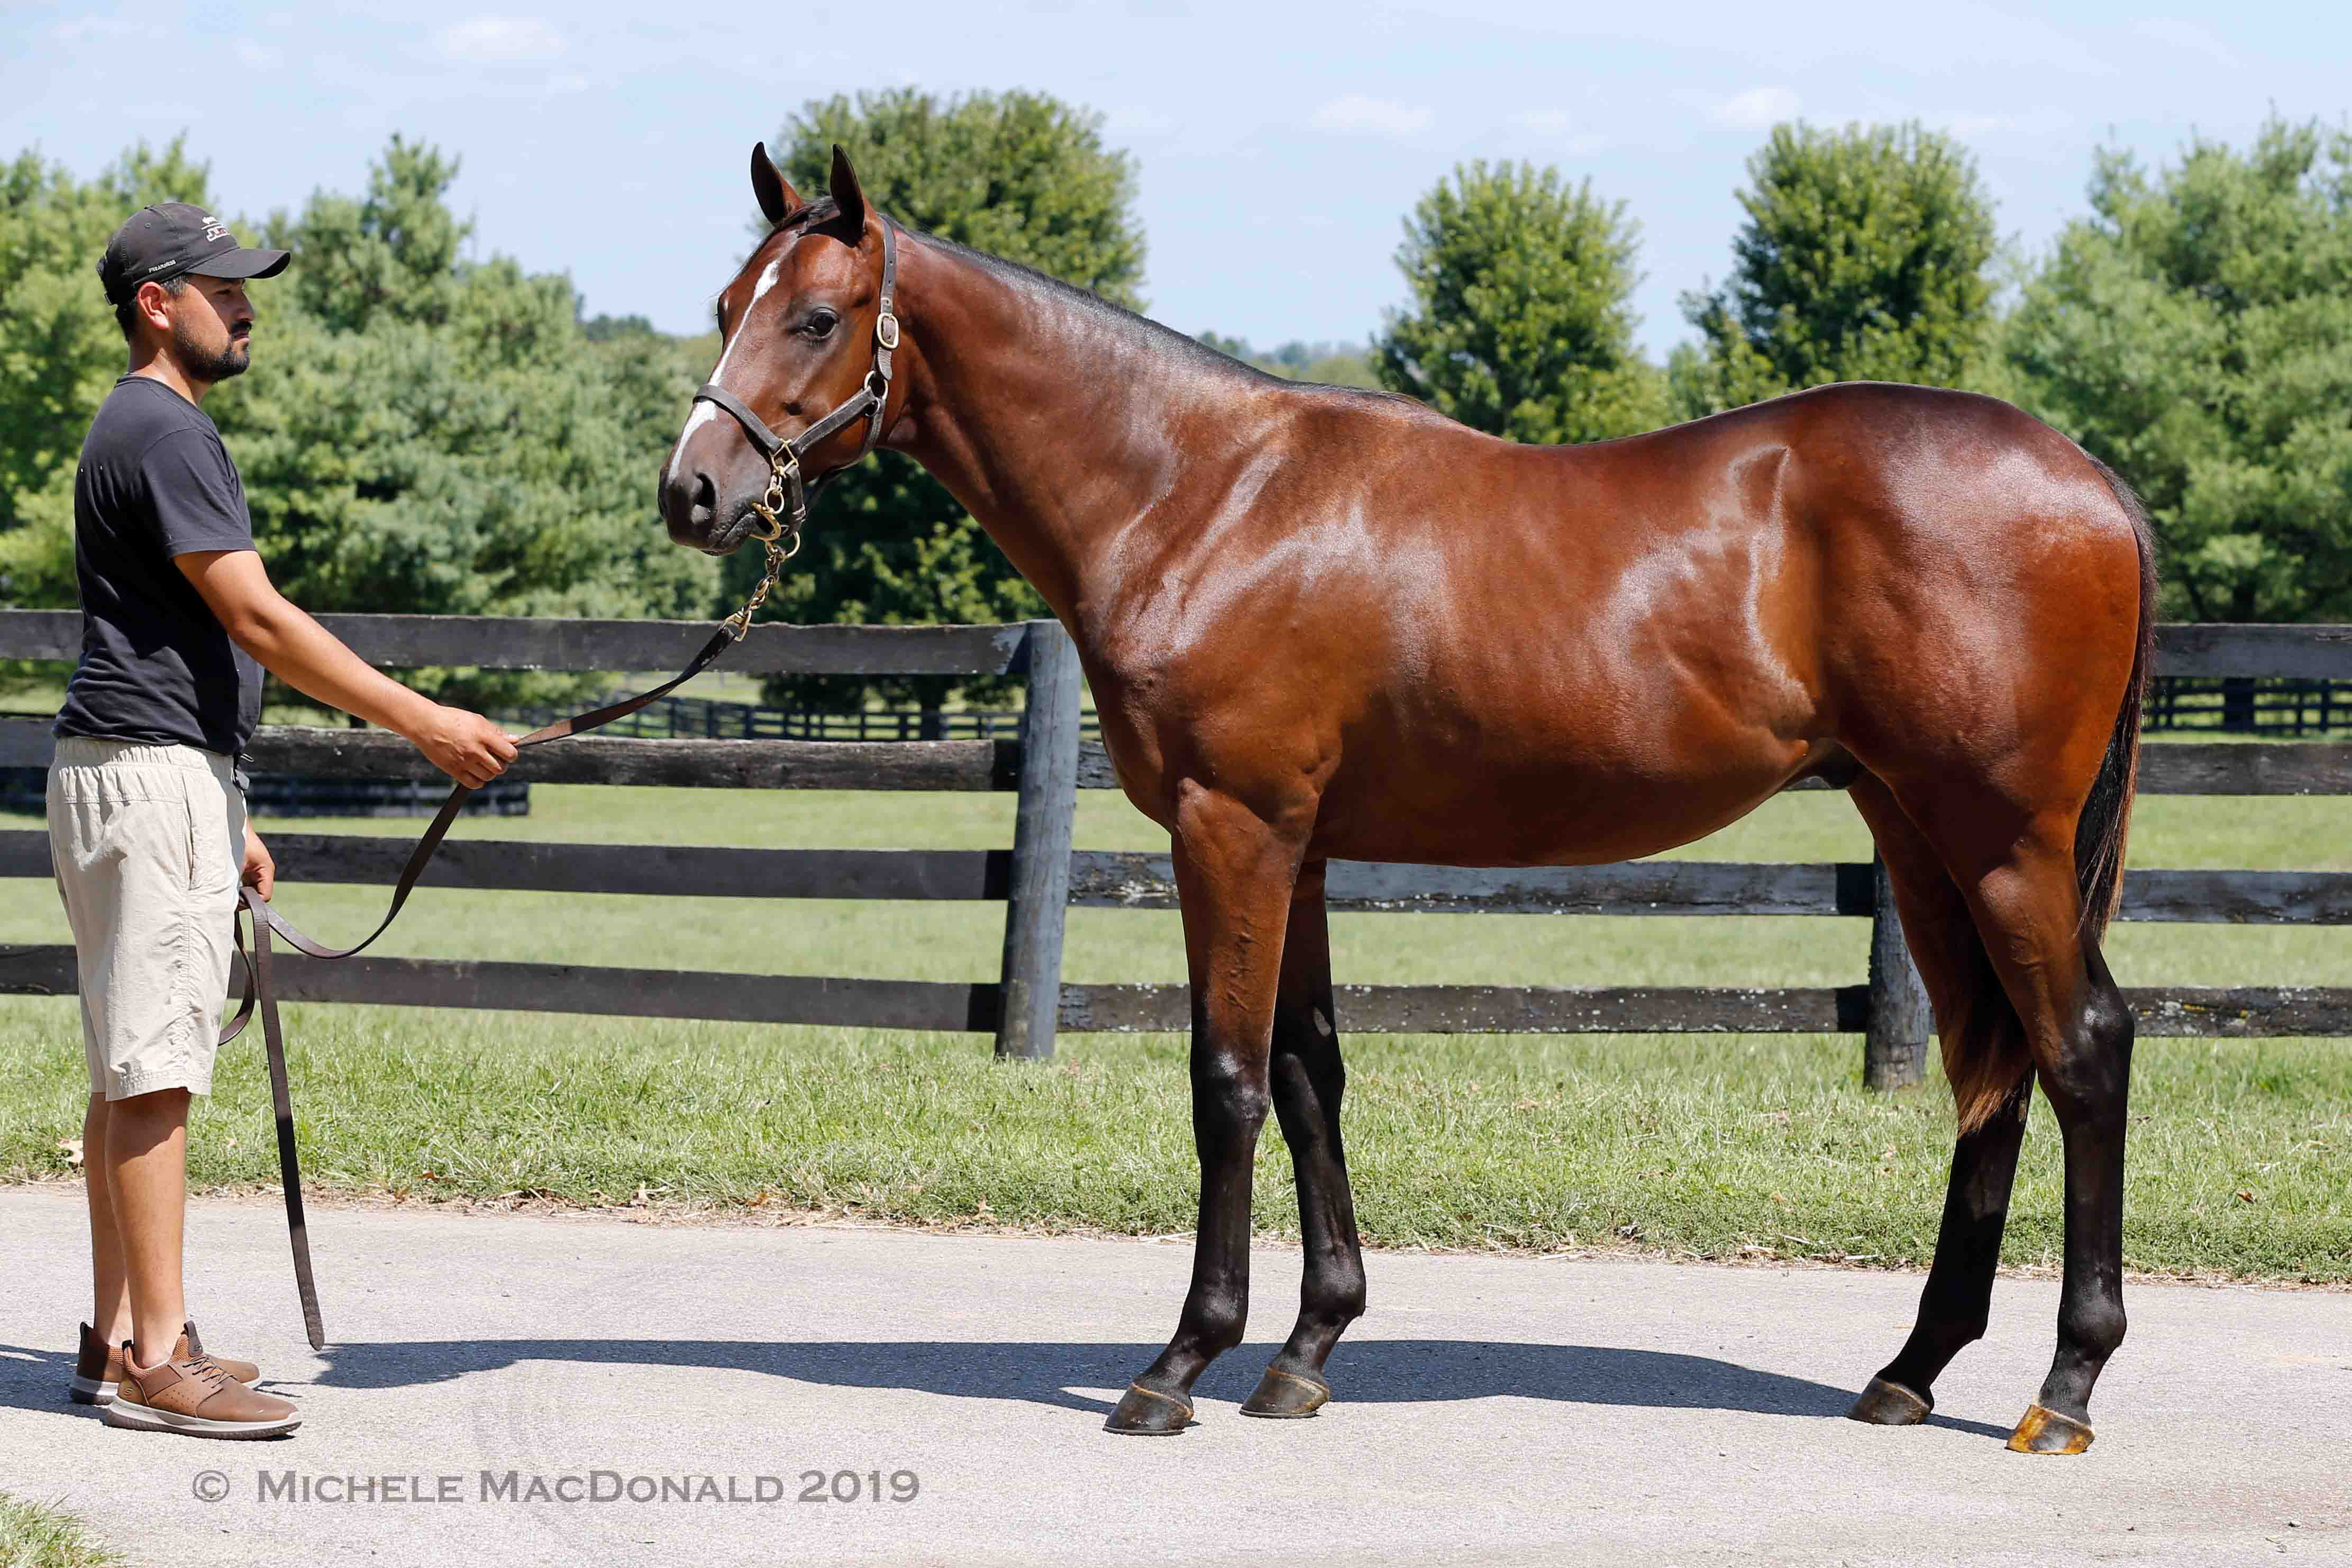 Sale star: this yearling colt is a half-brother to Justify by American Pharoah's sire, and he's up for auction at Keeneland tomorrow (Monday). Photo: Michele MacDonald